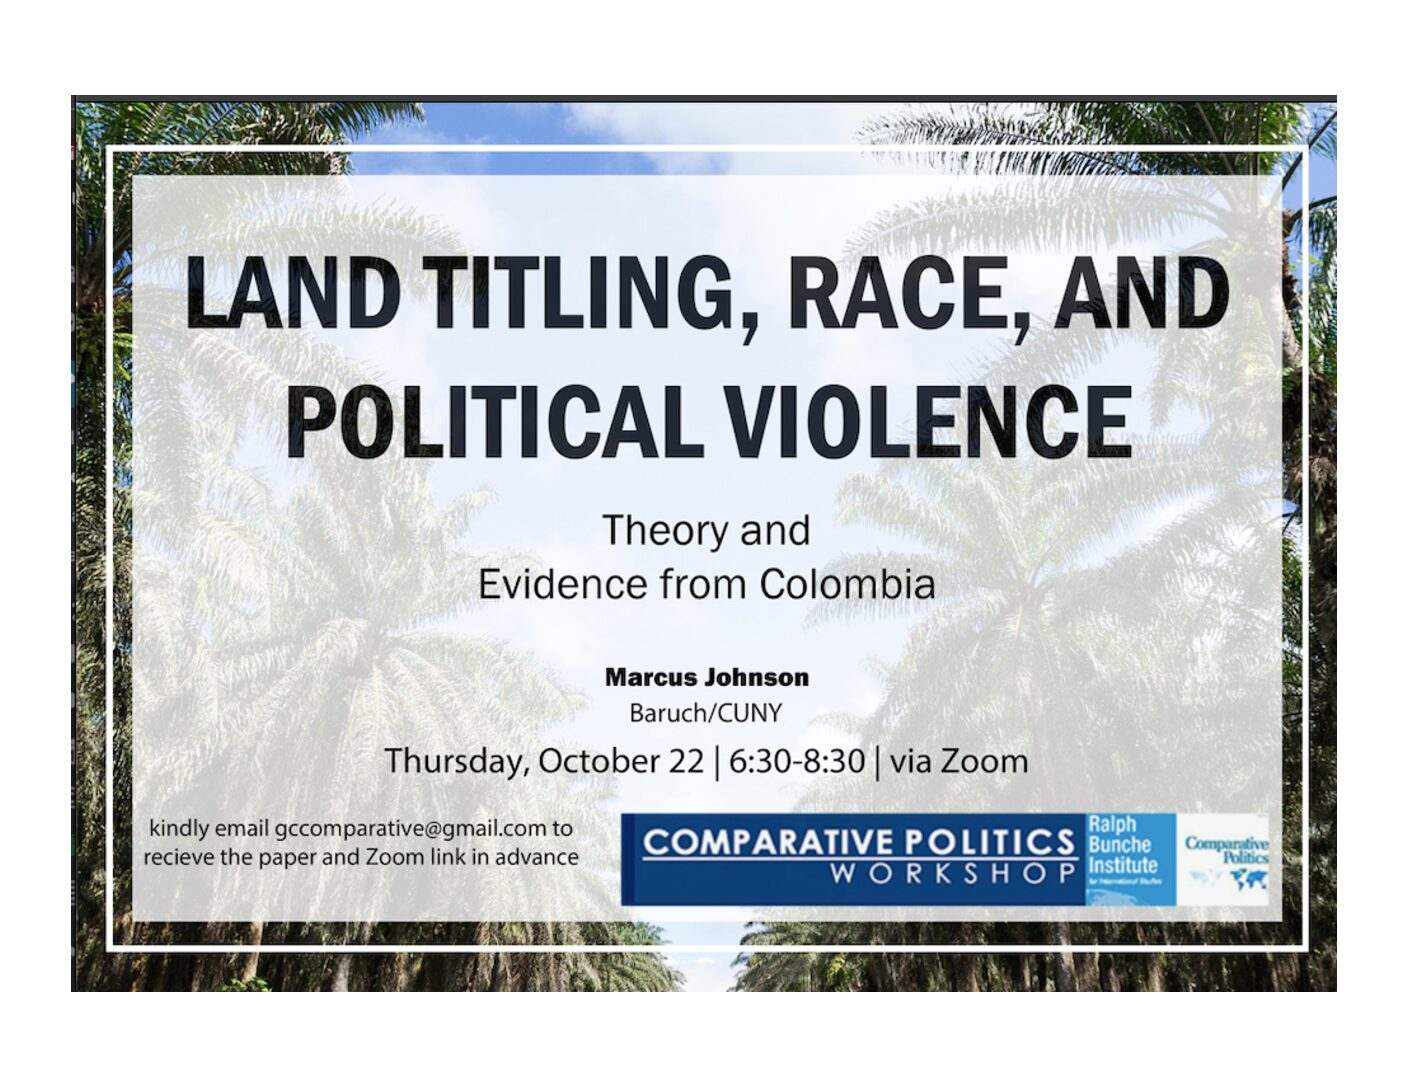 """CPW: Marcus Johnson, """"Land Titling, Race, and Political Violence: Theory and Evidence from Colombia,"""" Thursday, October 22, 6:30PM"""